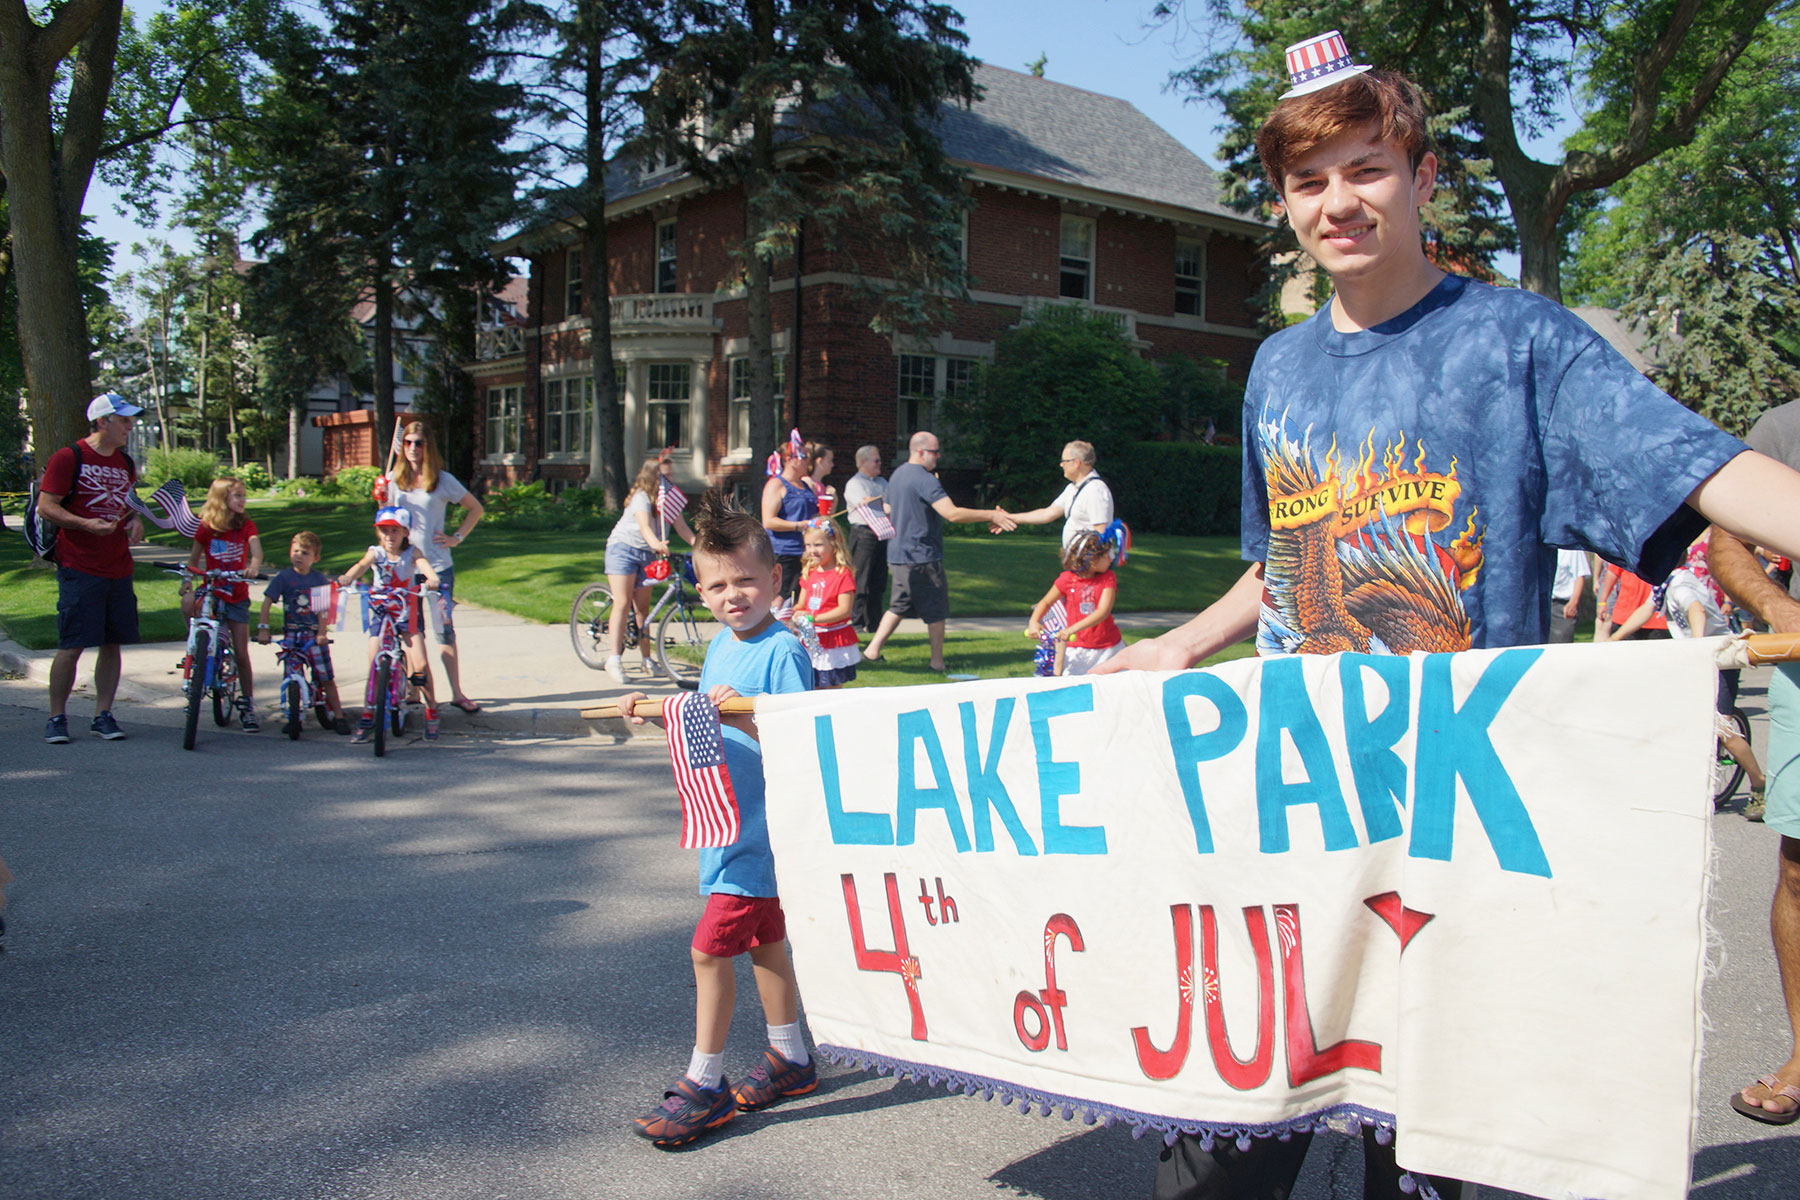 03_070418_lakepark4th_0294